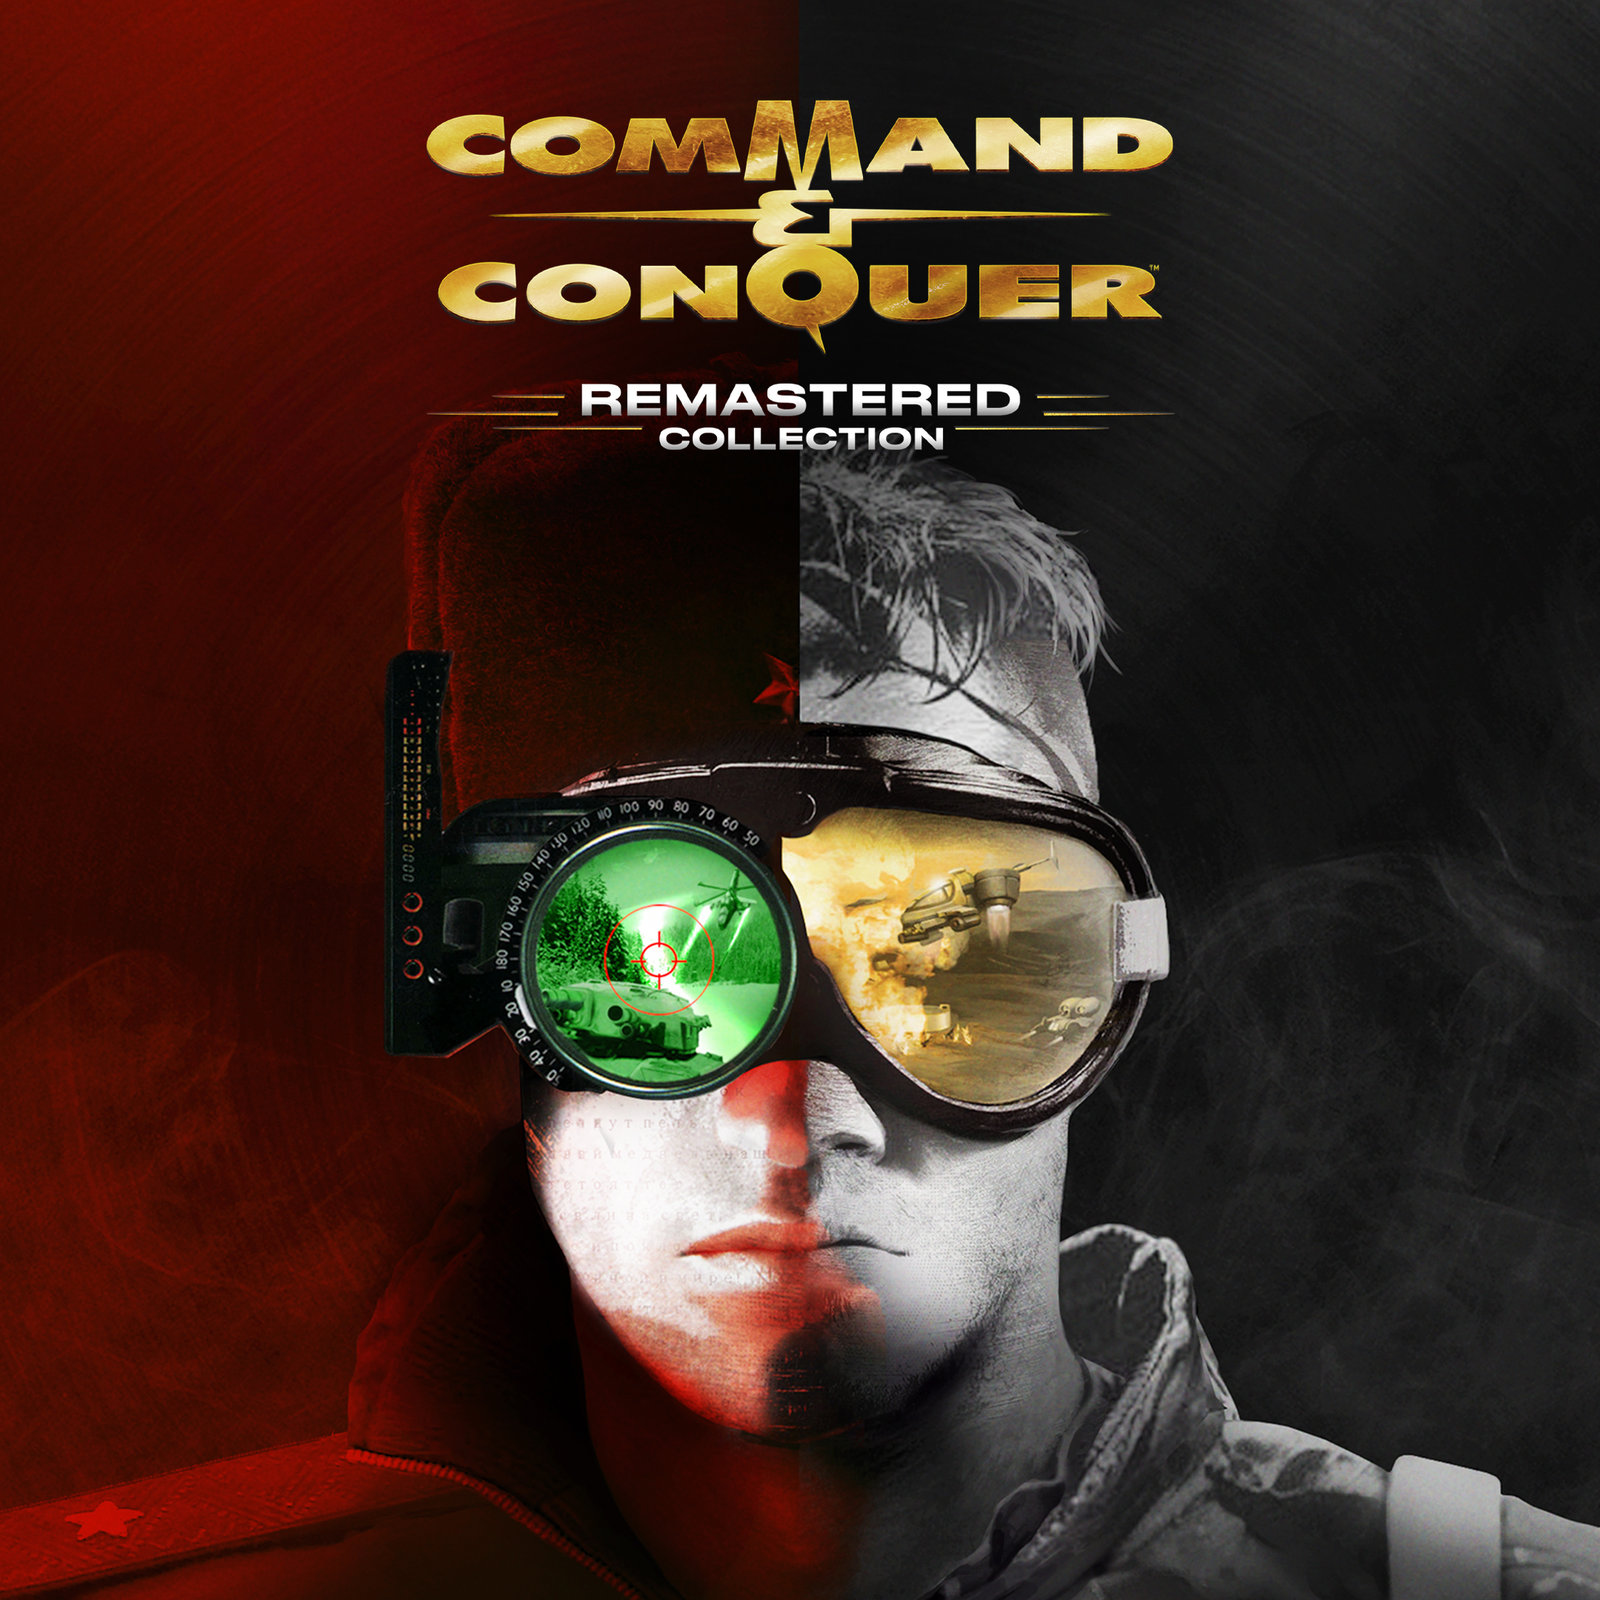 Poster for Command & Conquer Remastered Collection